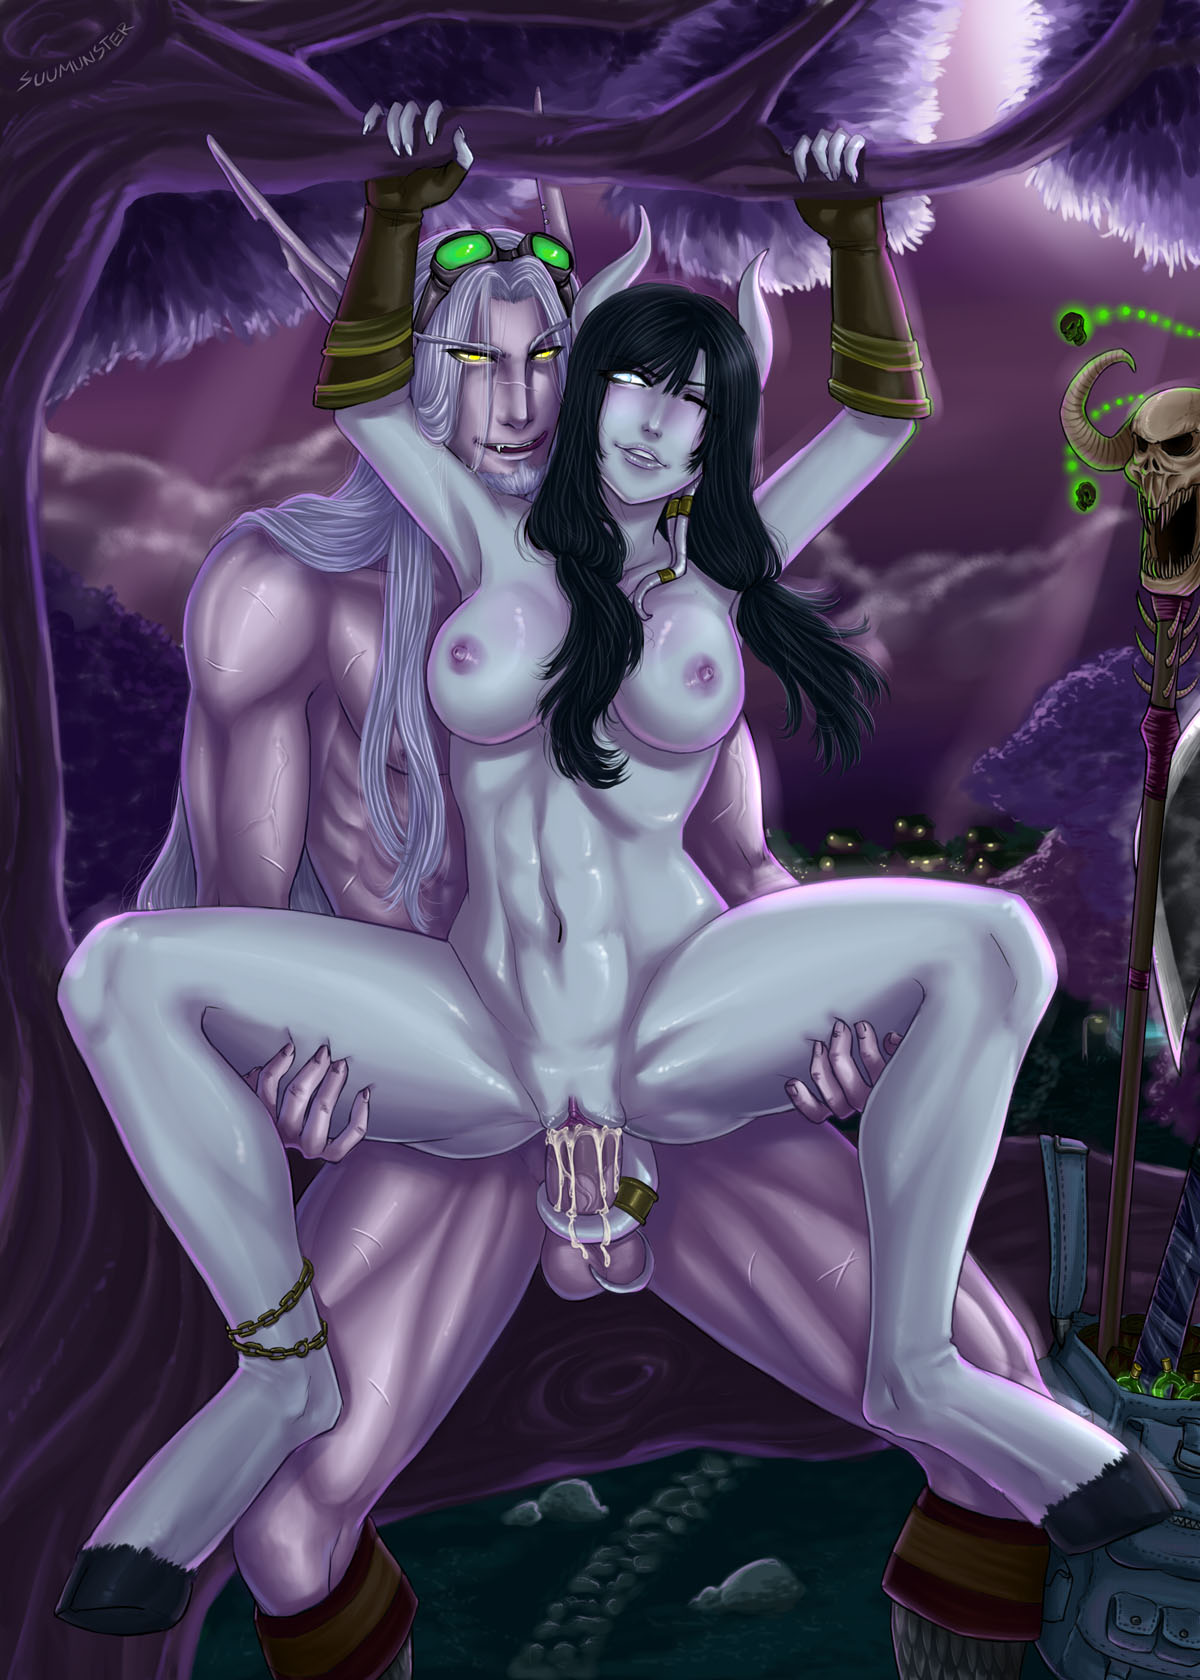 World of warcraft elf sex pics nsfw galleries